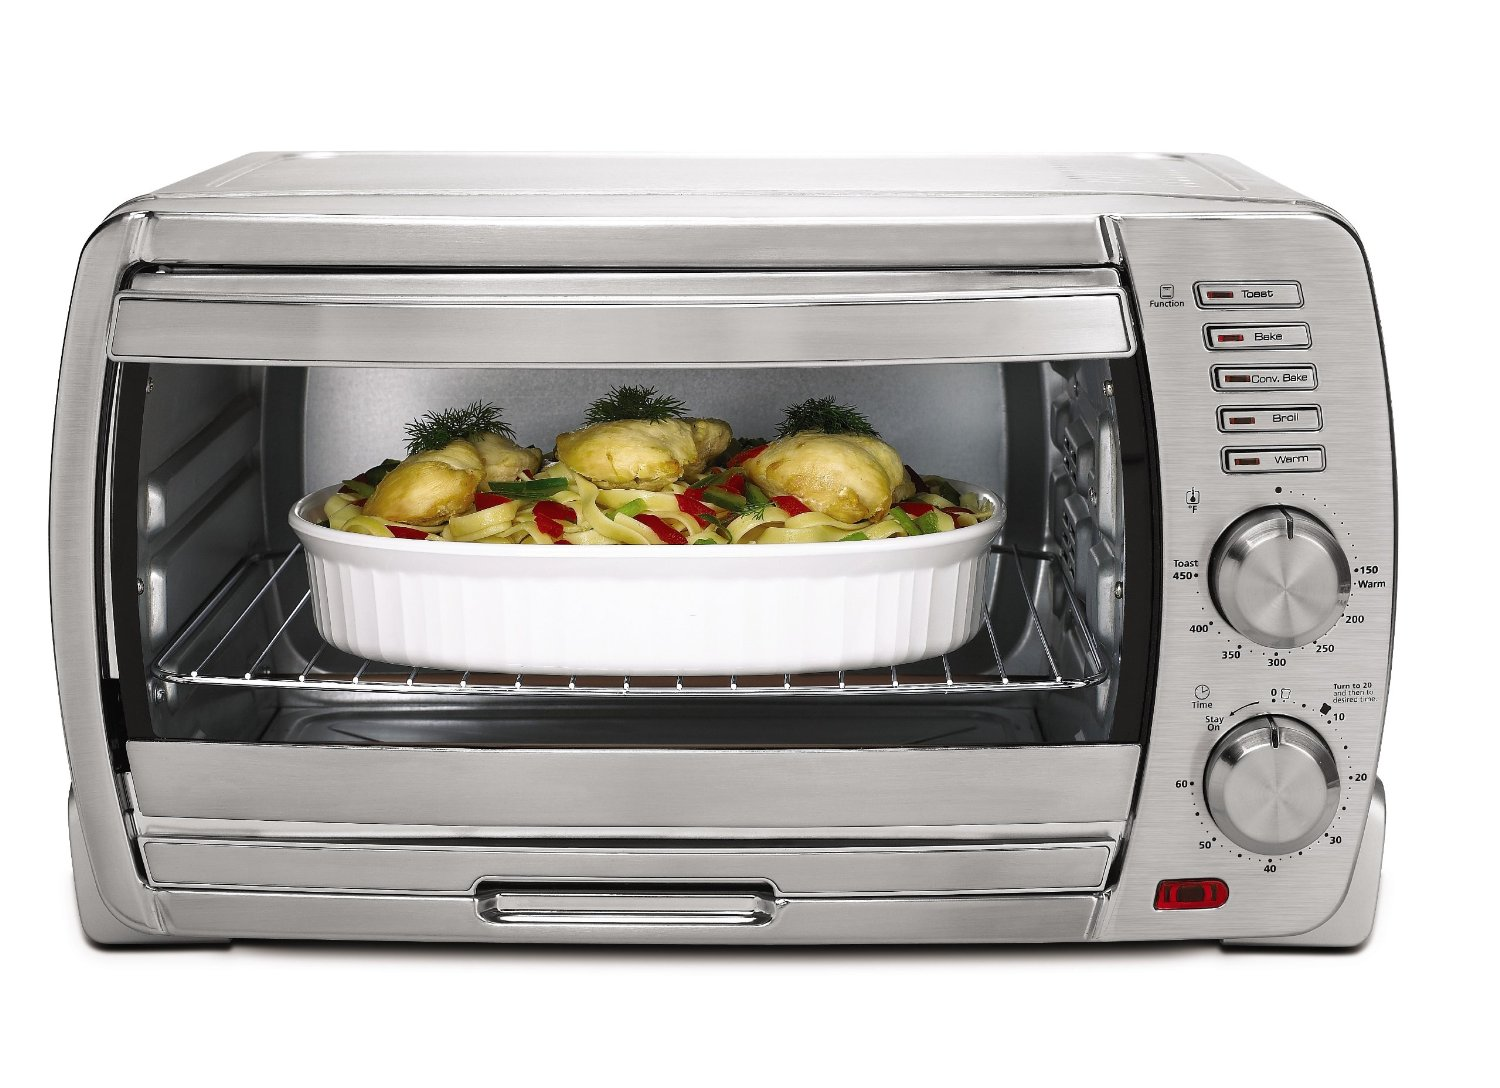 itm large digital toaster function convection kitchen rotisserie oven cooking